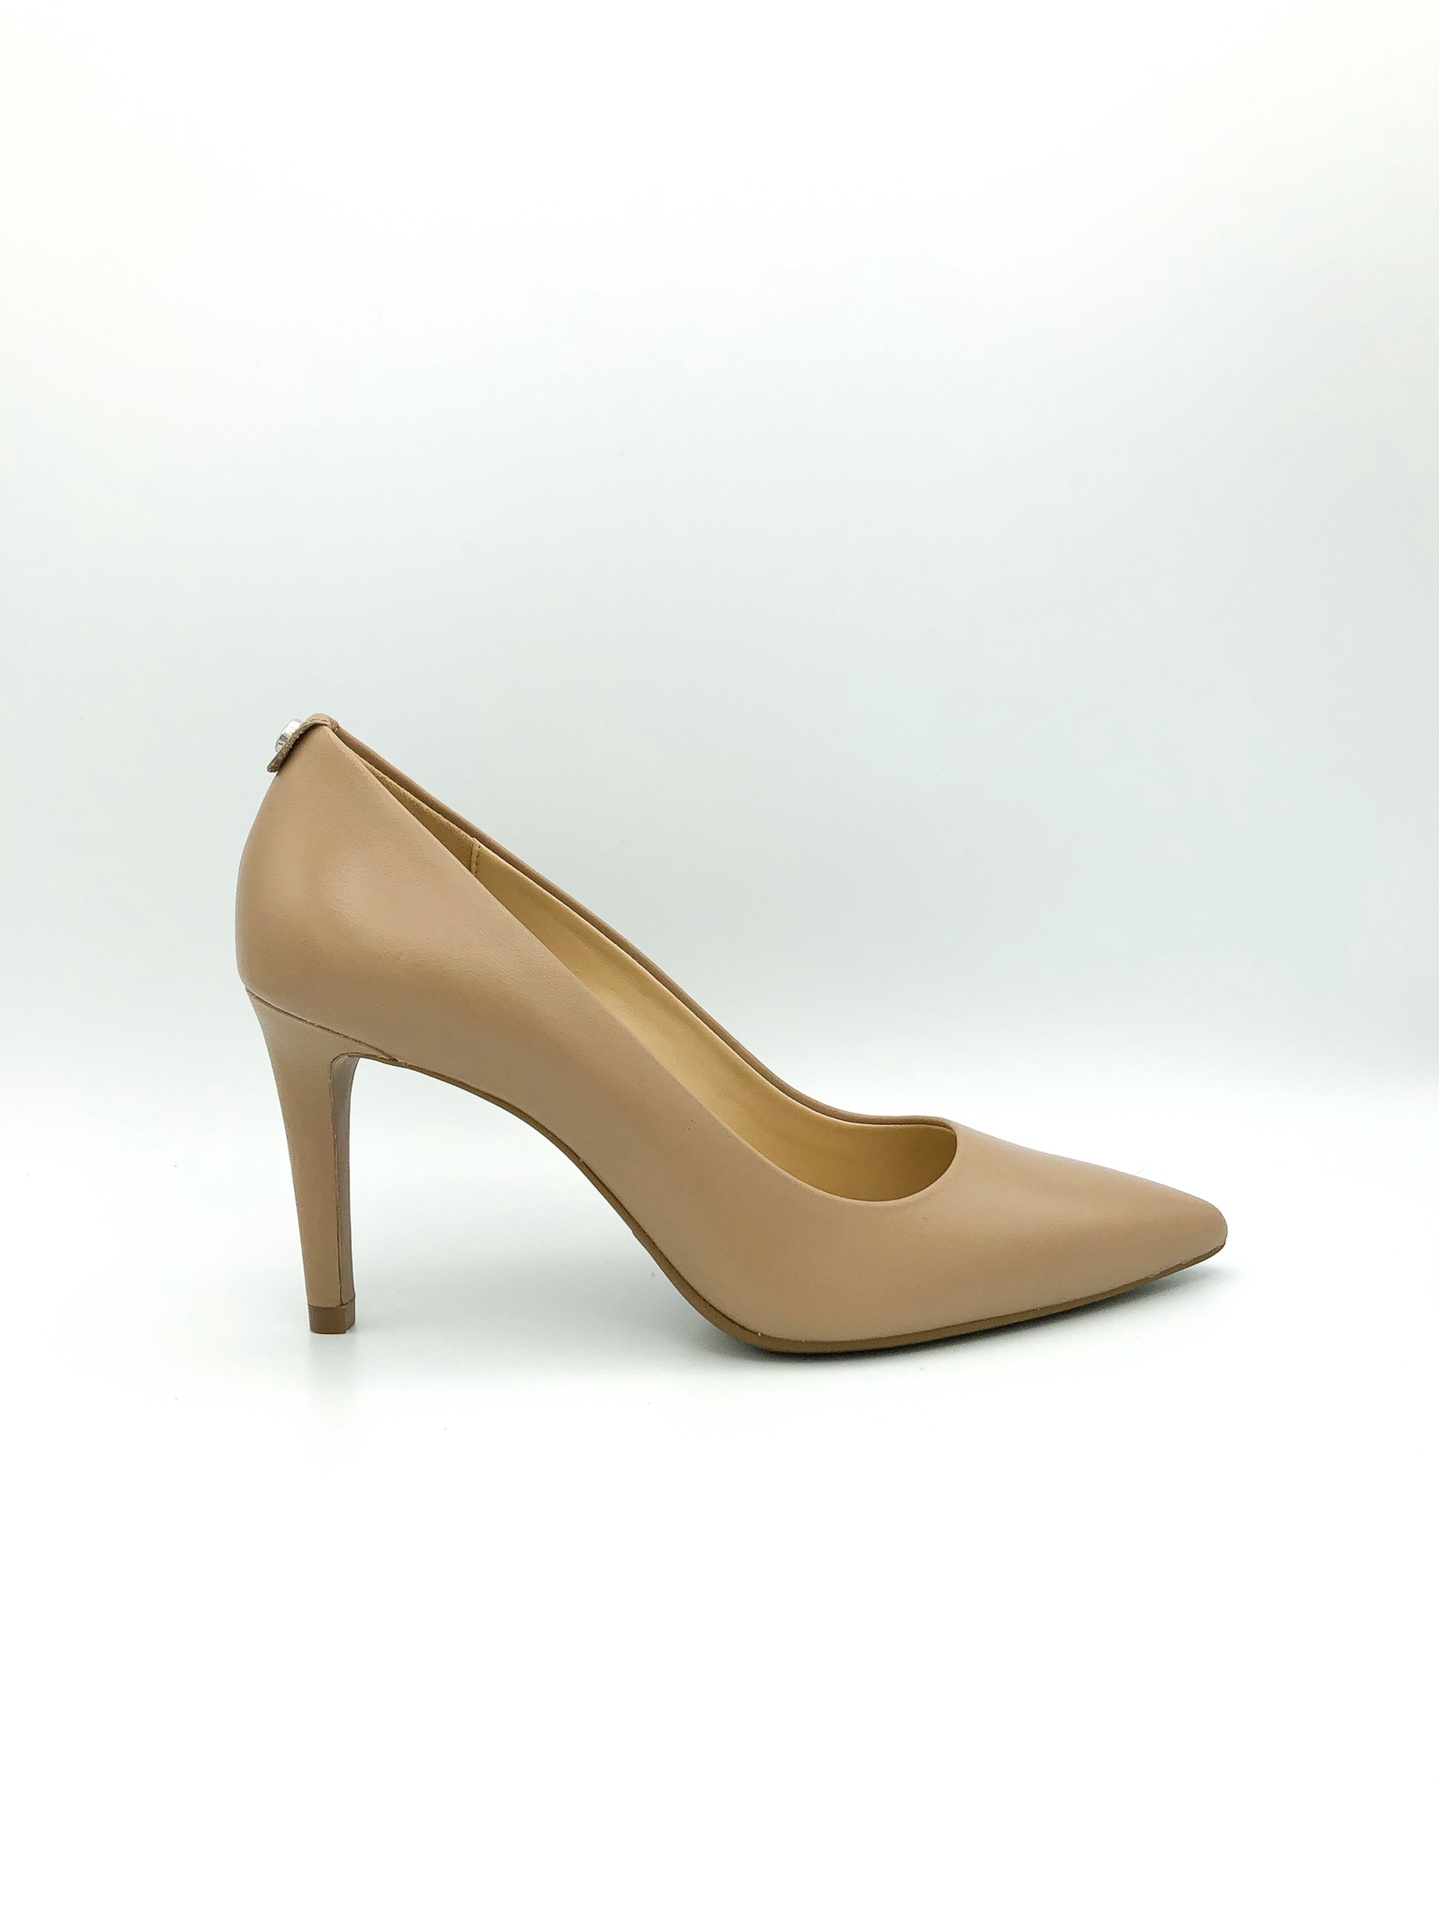 MICHAEL KORS - DOROTHY FLEX PUMP IN DARK KHAKI